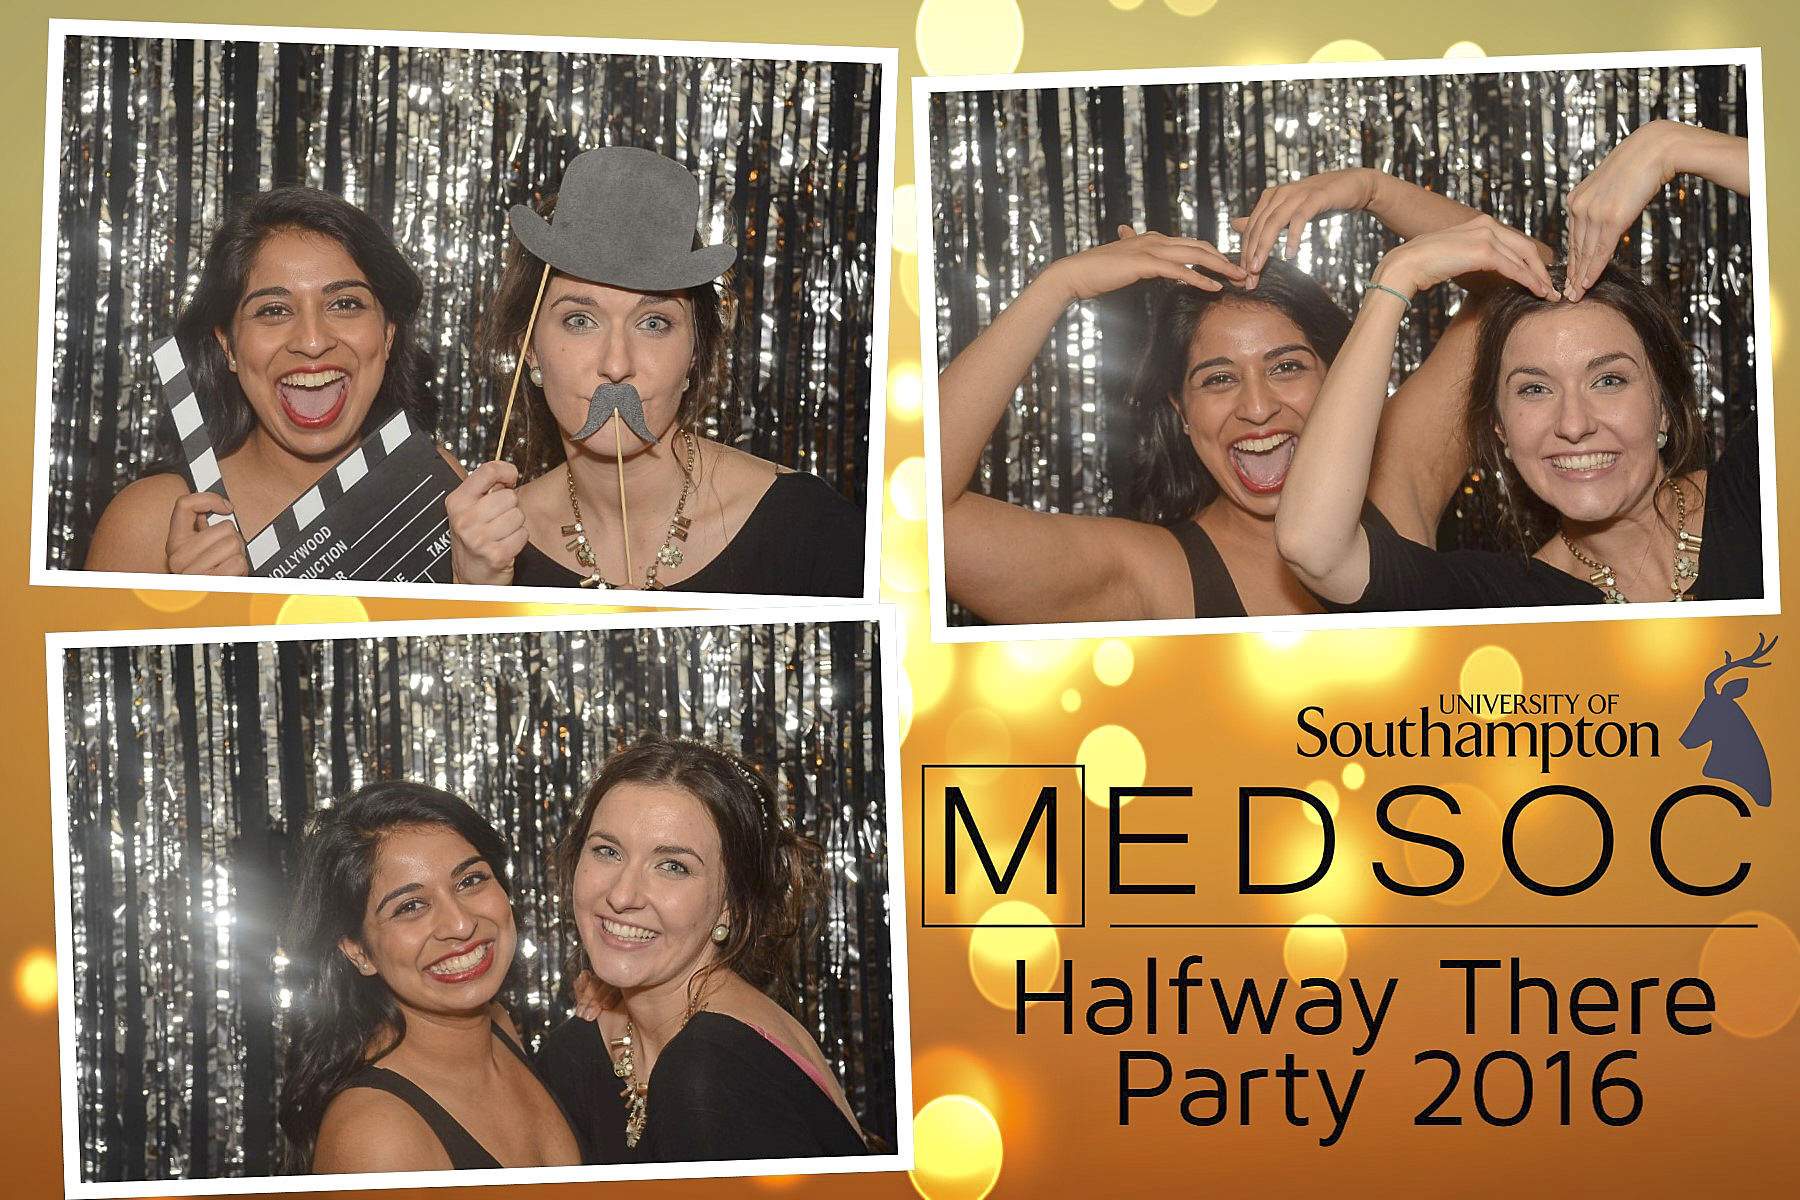 MedSoc Halfway There Party 2016 DS235613.jpg